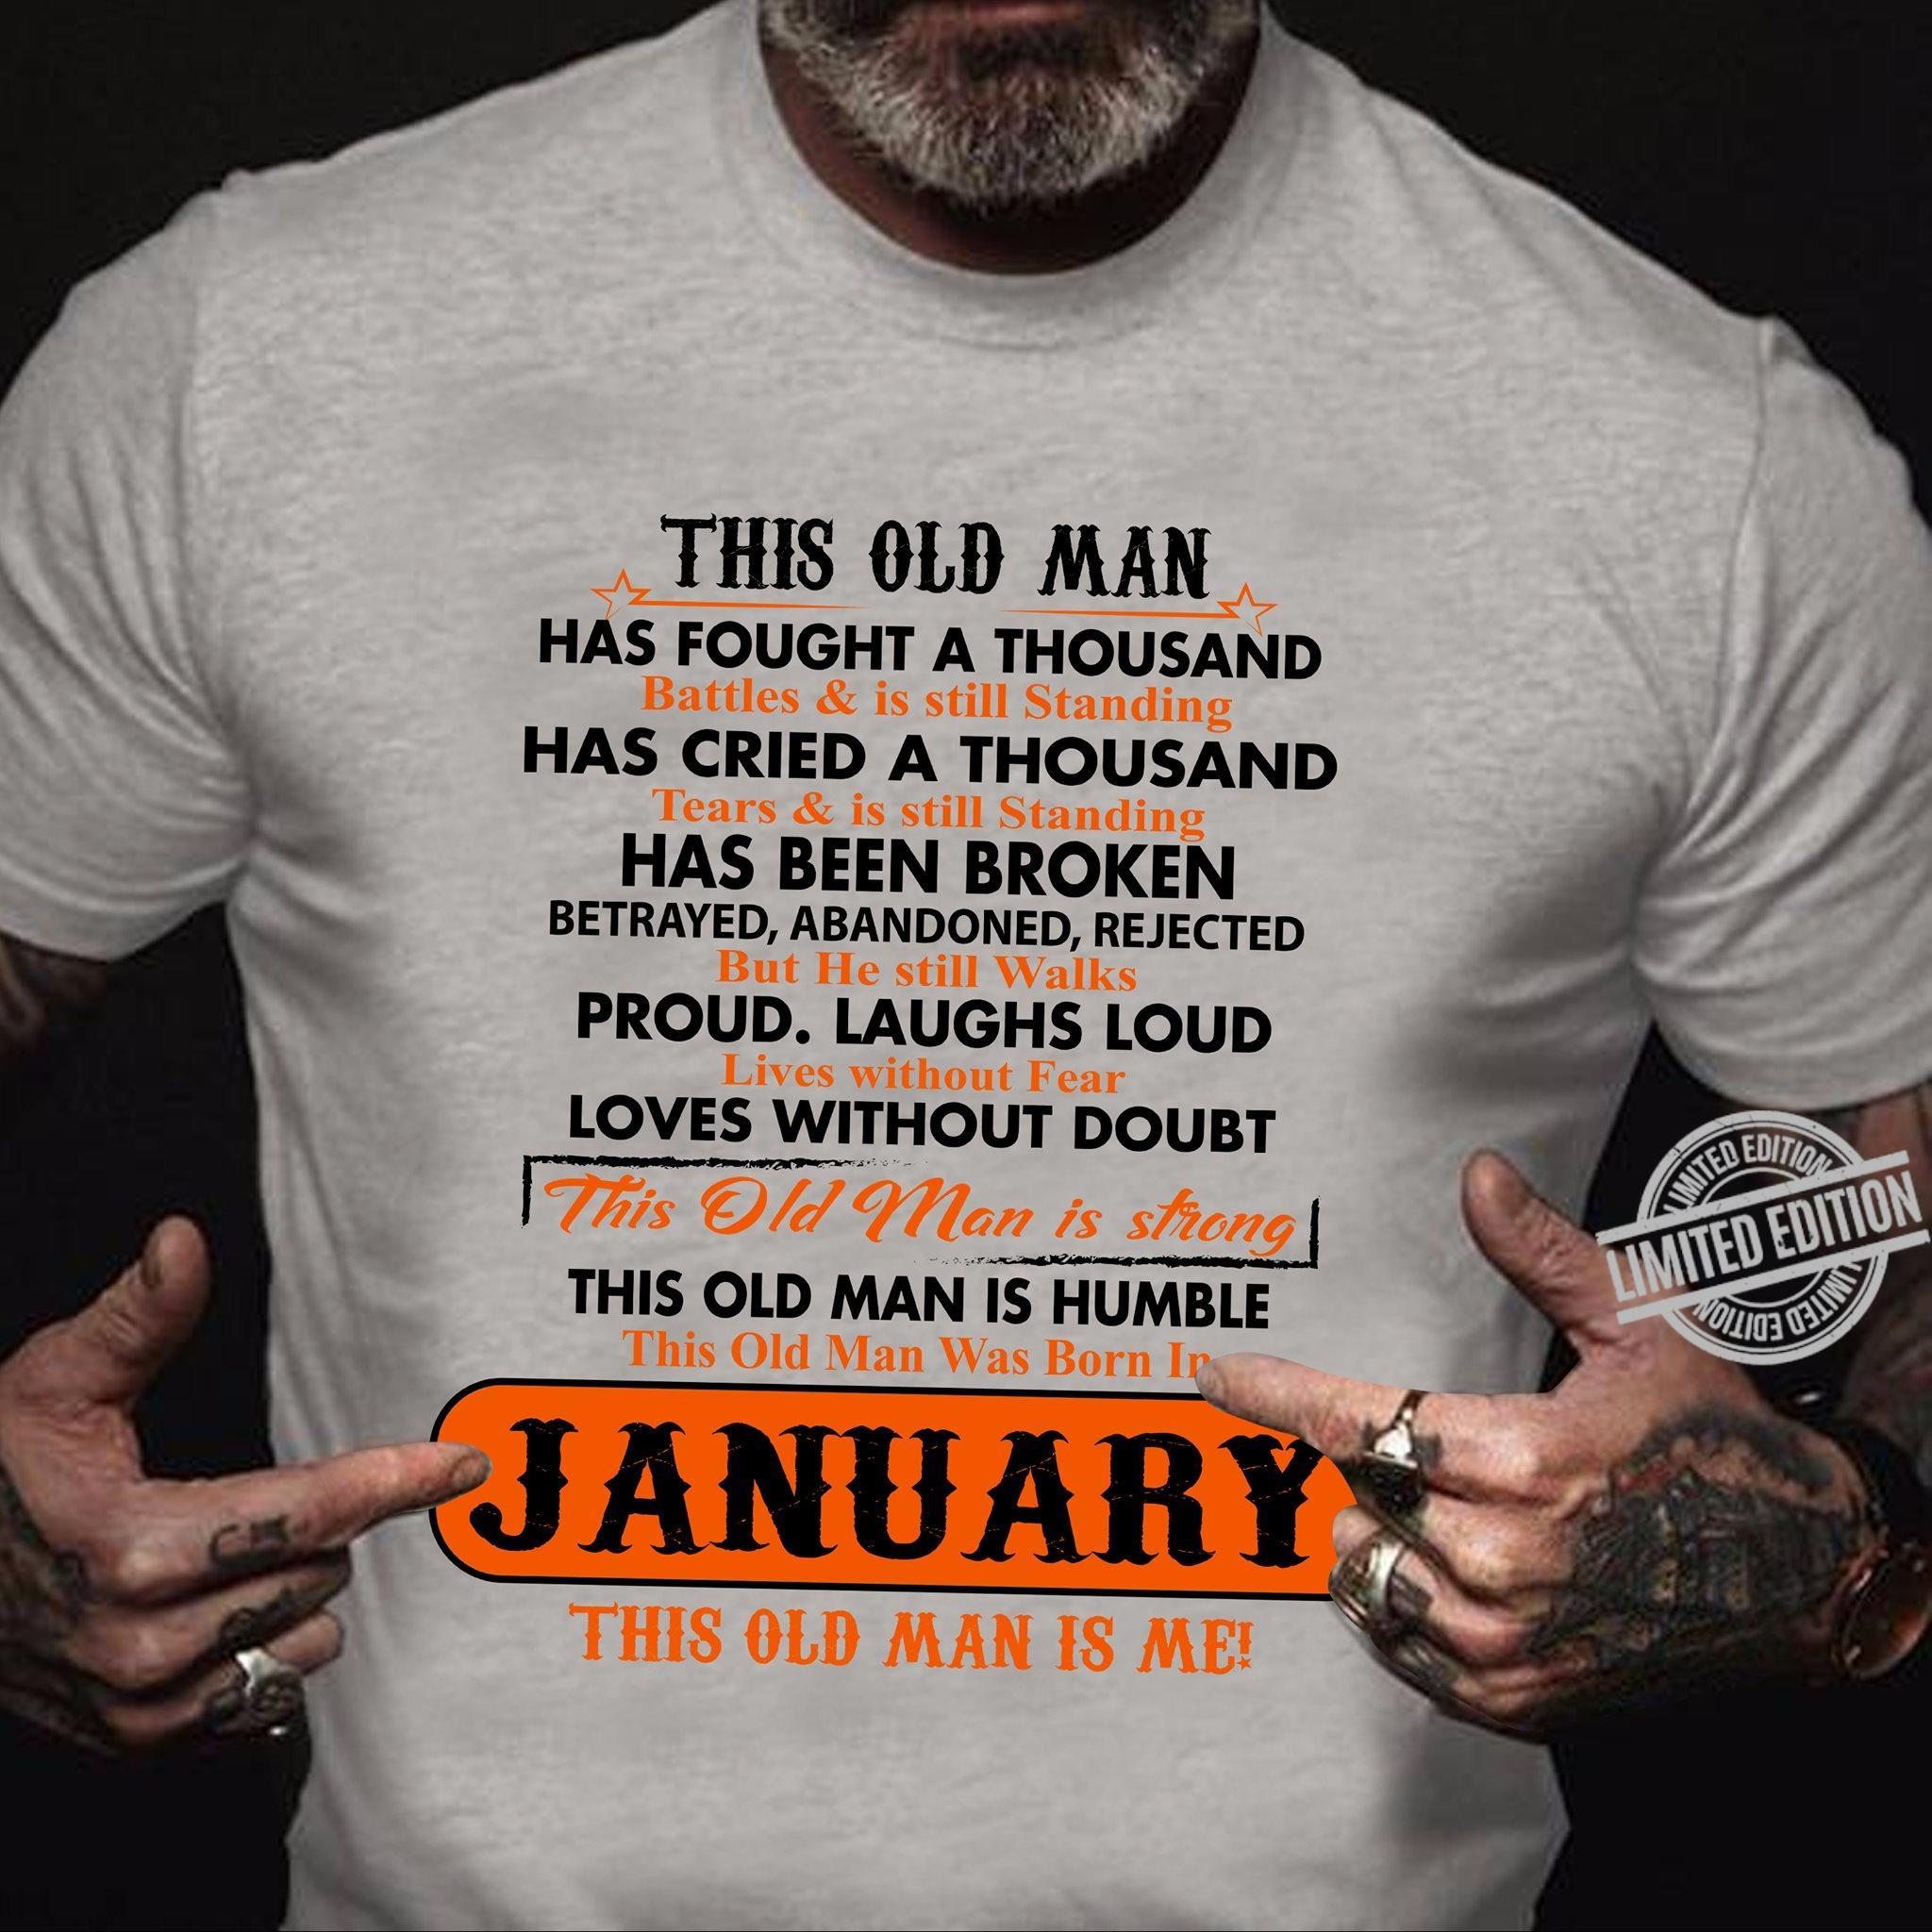 This Old Man Has Fought A Thousand Has Cried A Thousand Has Been Broken Proud Laughs Loud Loves Without Doubt This Old Man Is Humble January This Old Man Is Me Shirt